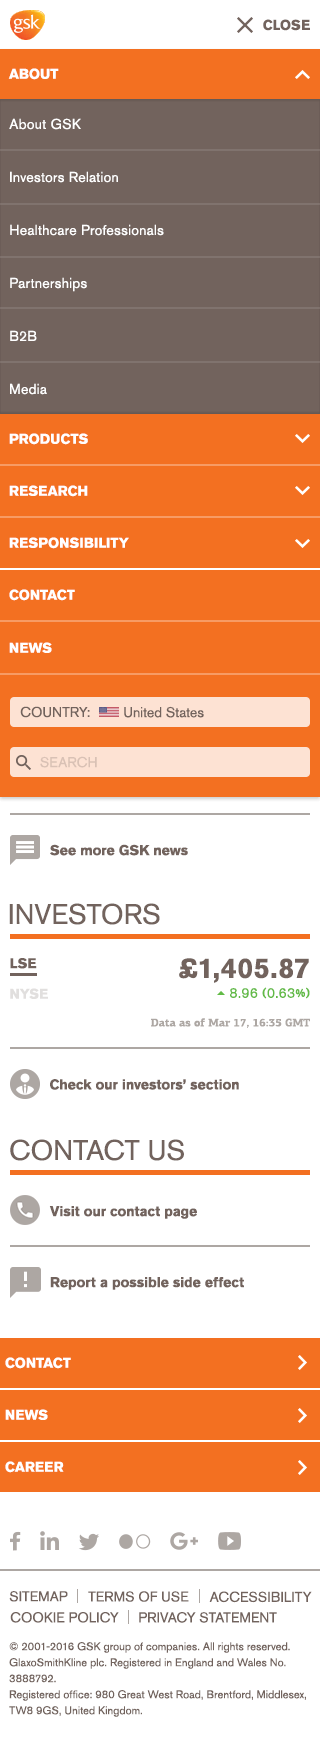 GSK Homepage Redesign Mobile